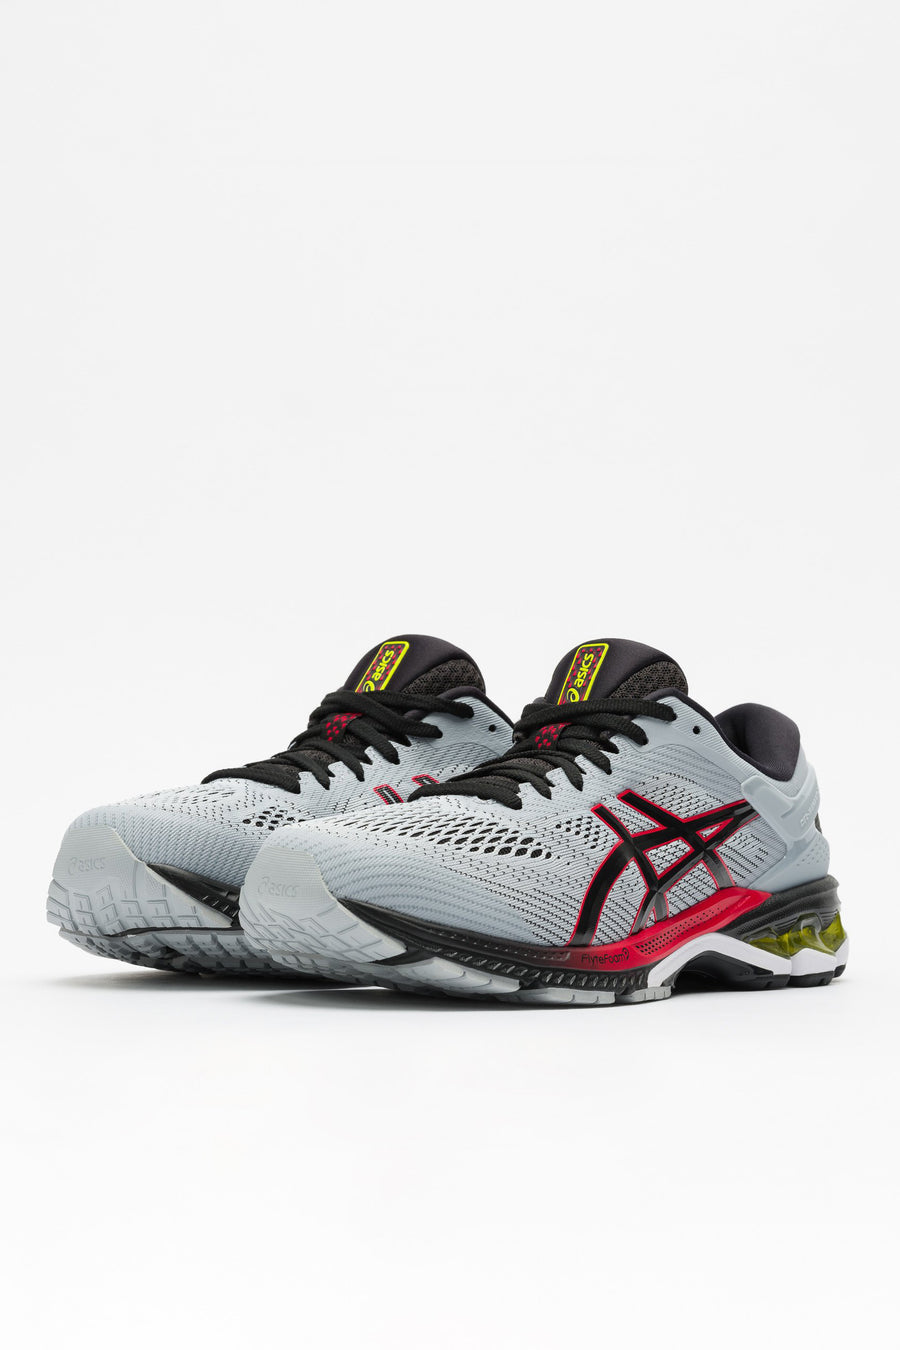 ASICS Gel-Kayano 26 in PIedmont Grey/Black - Notre